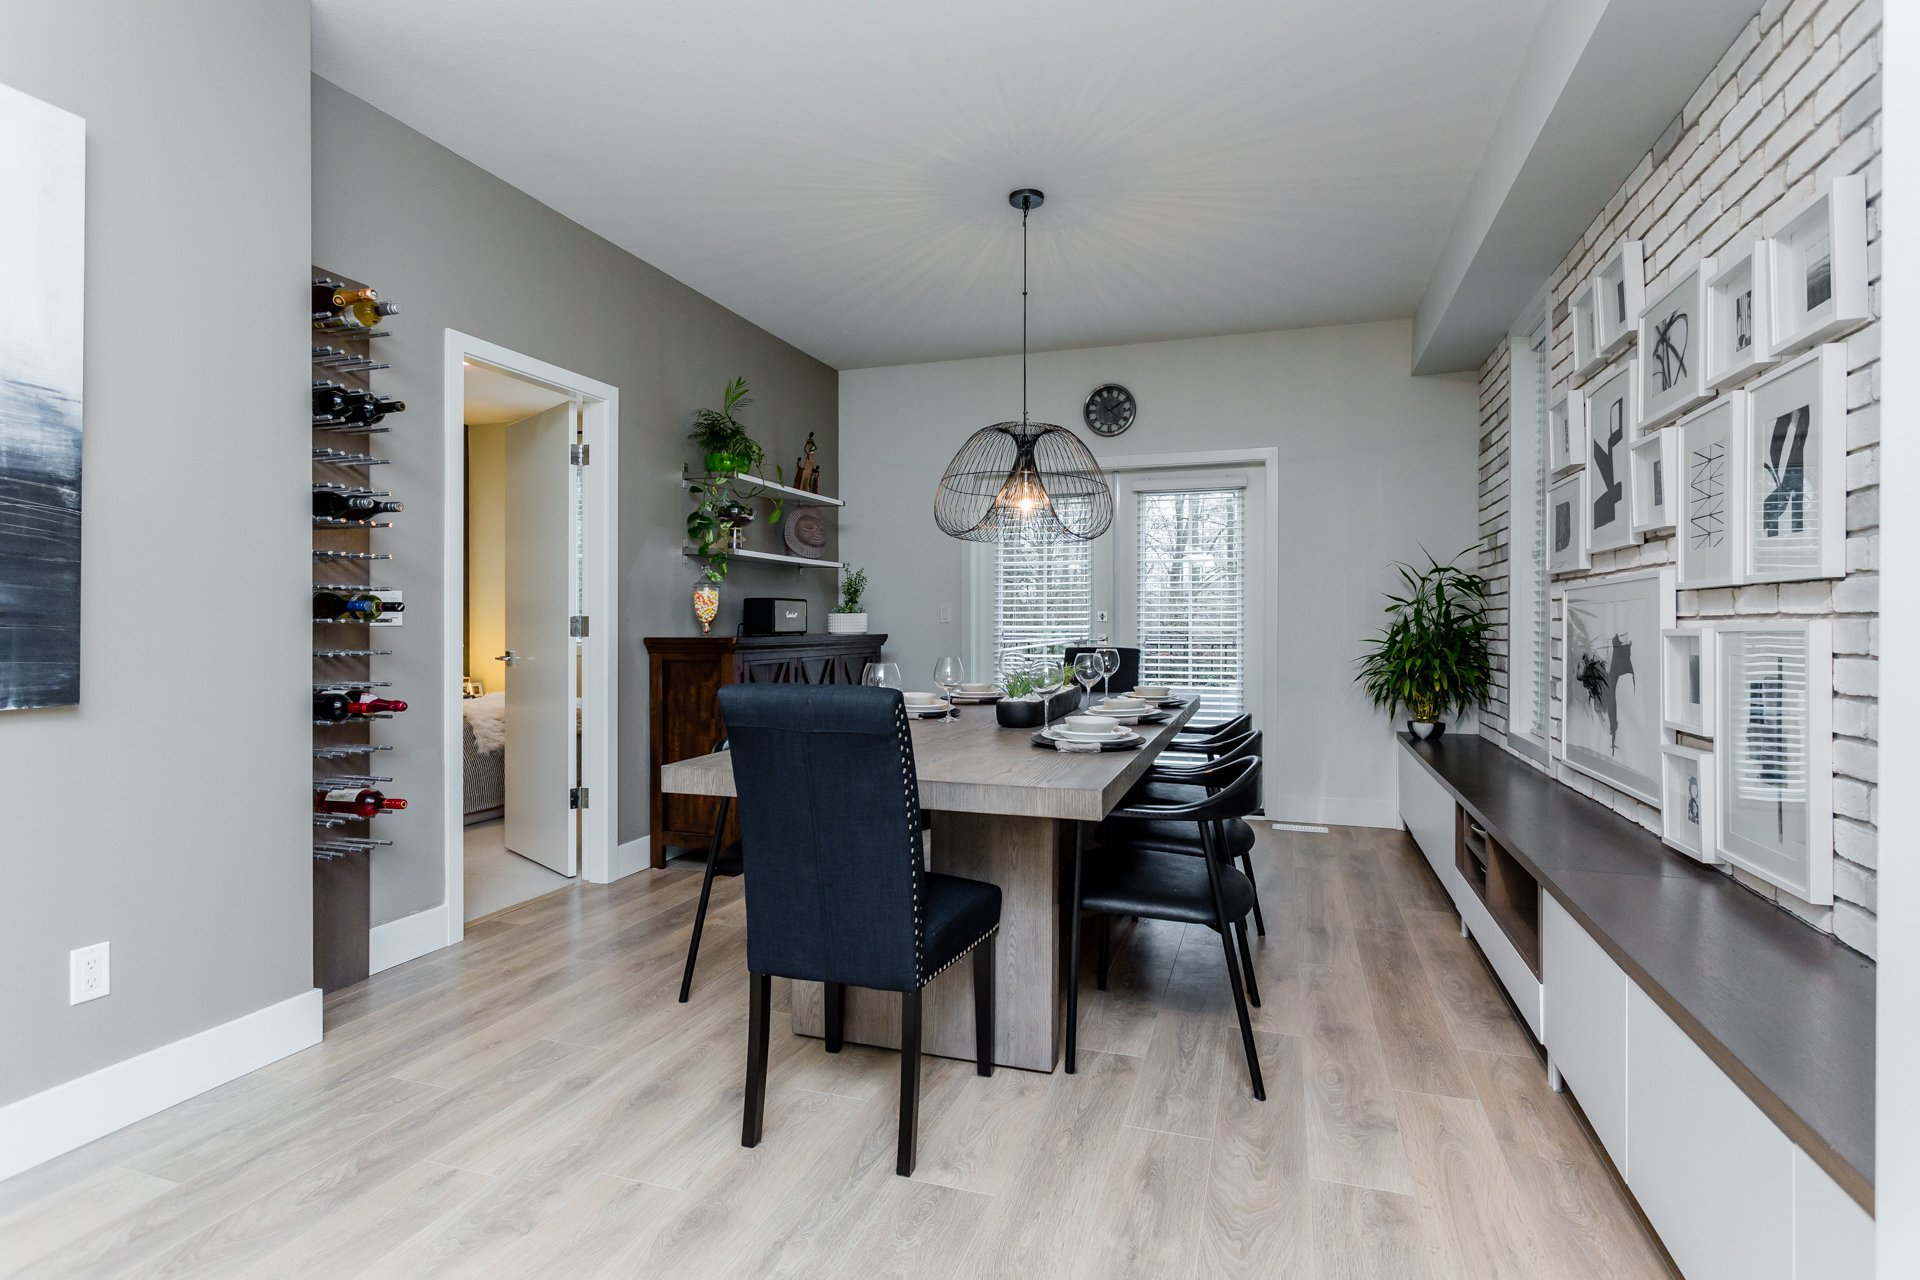 """Photo 13: Photos: 8 8217 204B Street in Langley: Willoughby Heights Townhouse for sale in """"EVERLY GREEN"""" : MLS®# R2236678"""